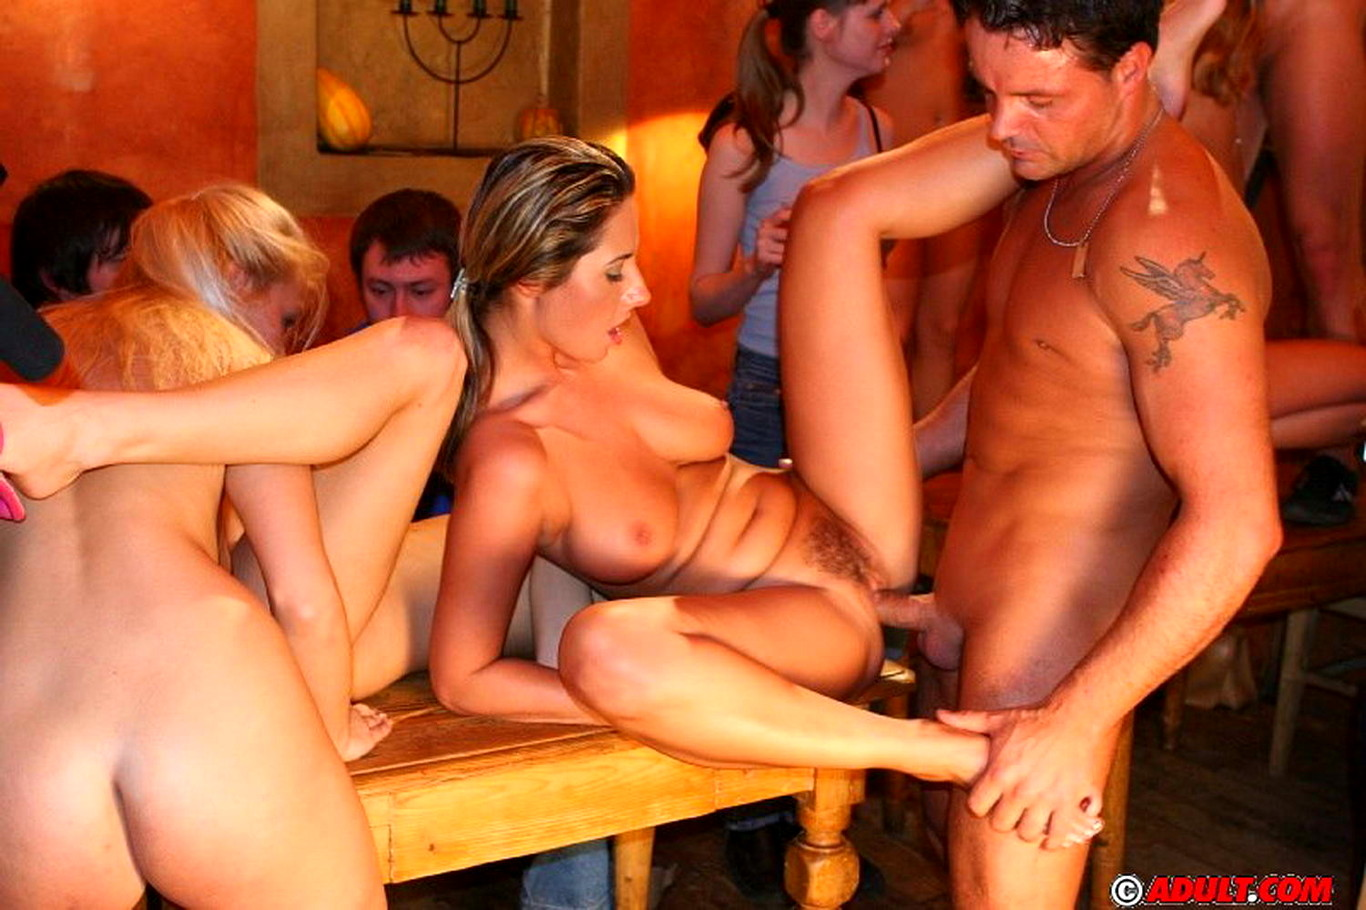 Group party sex swinger, married nudist